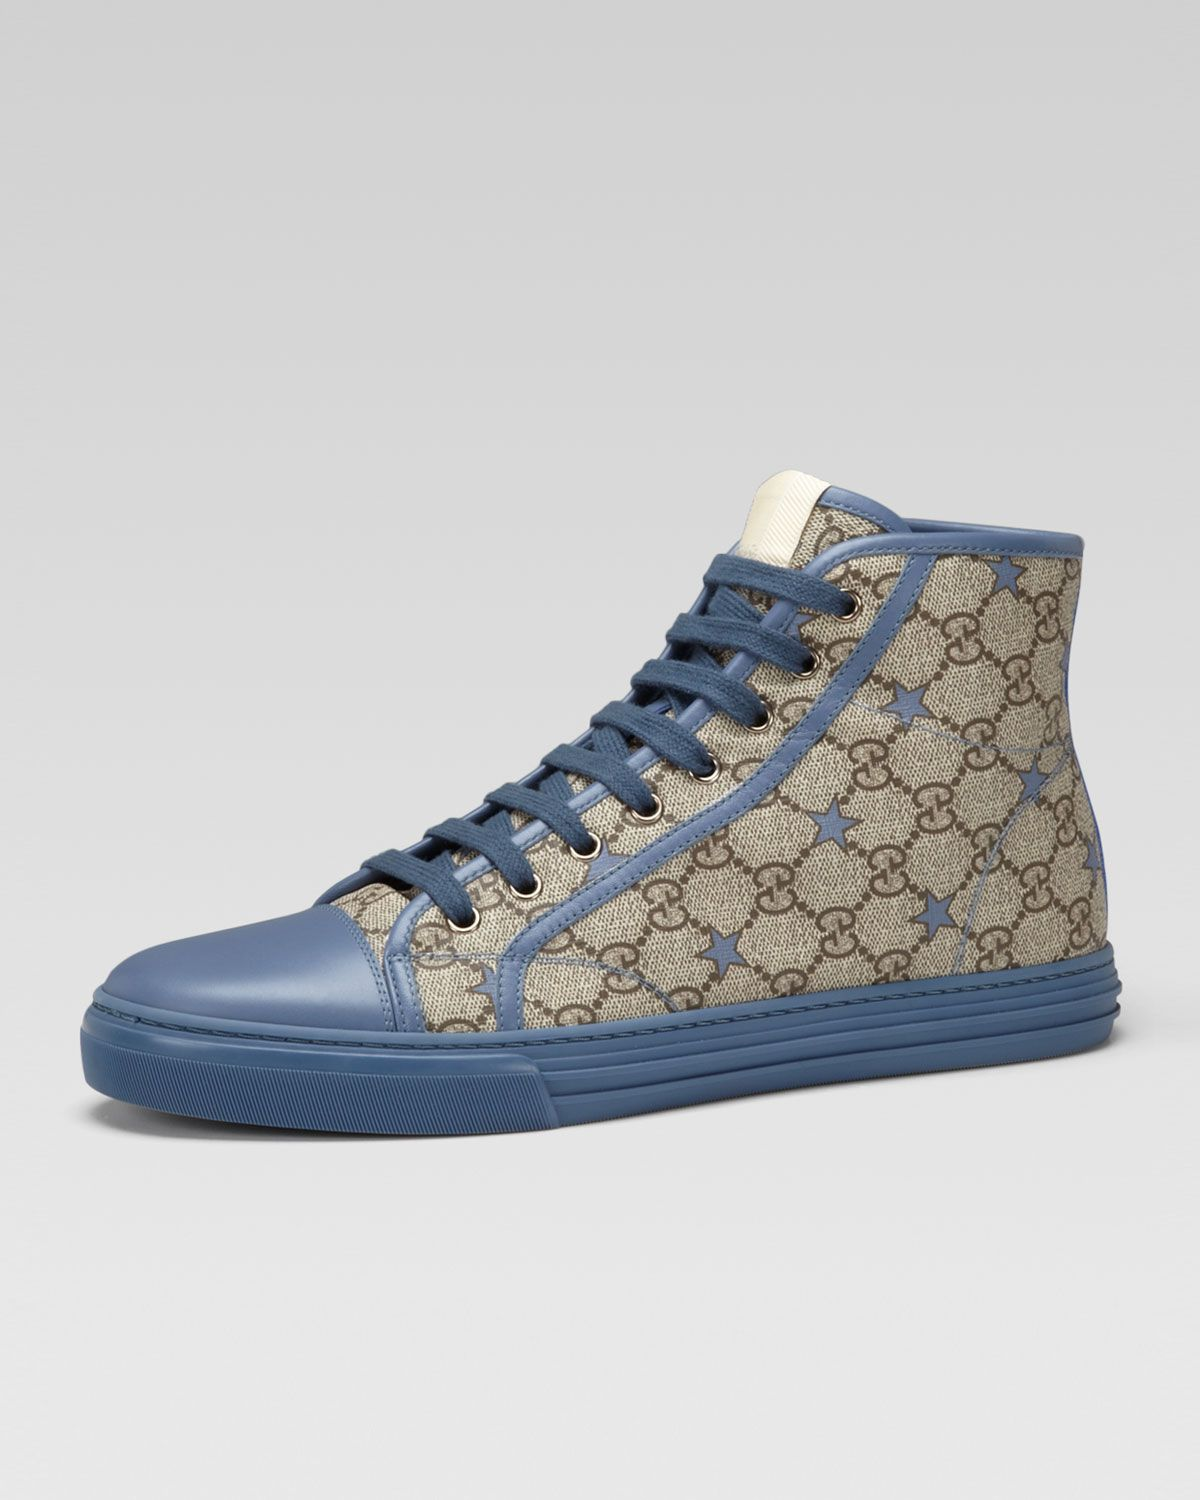 4dbb8b19609 Gucci California GG PU Stars Fabric High-Top Sneaker - Neiman Marcus ...